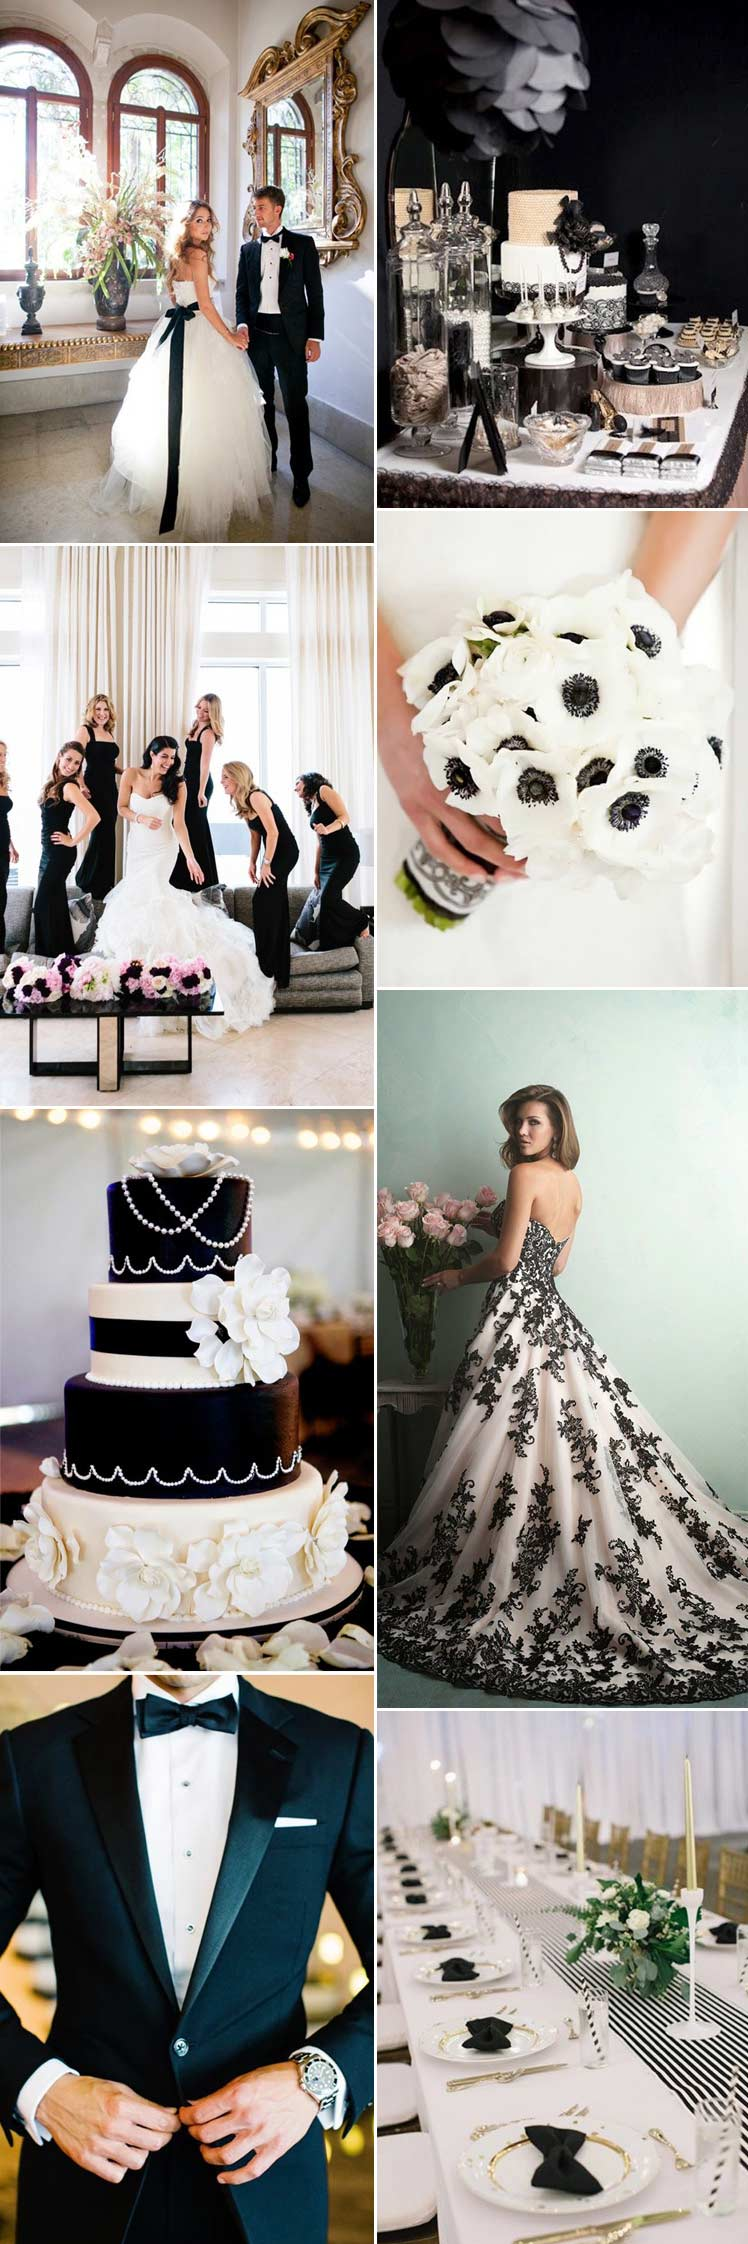 Black and white monochrome wedding inspiration